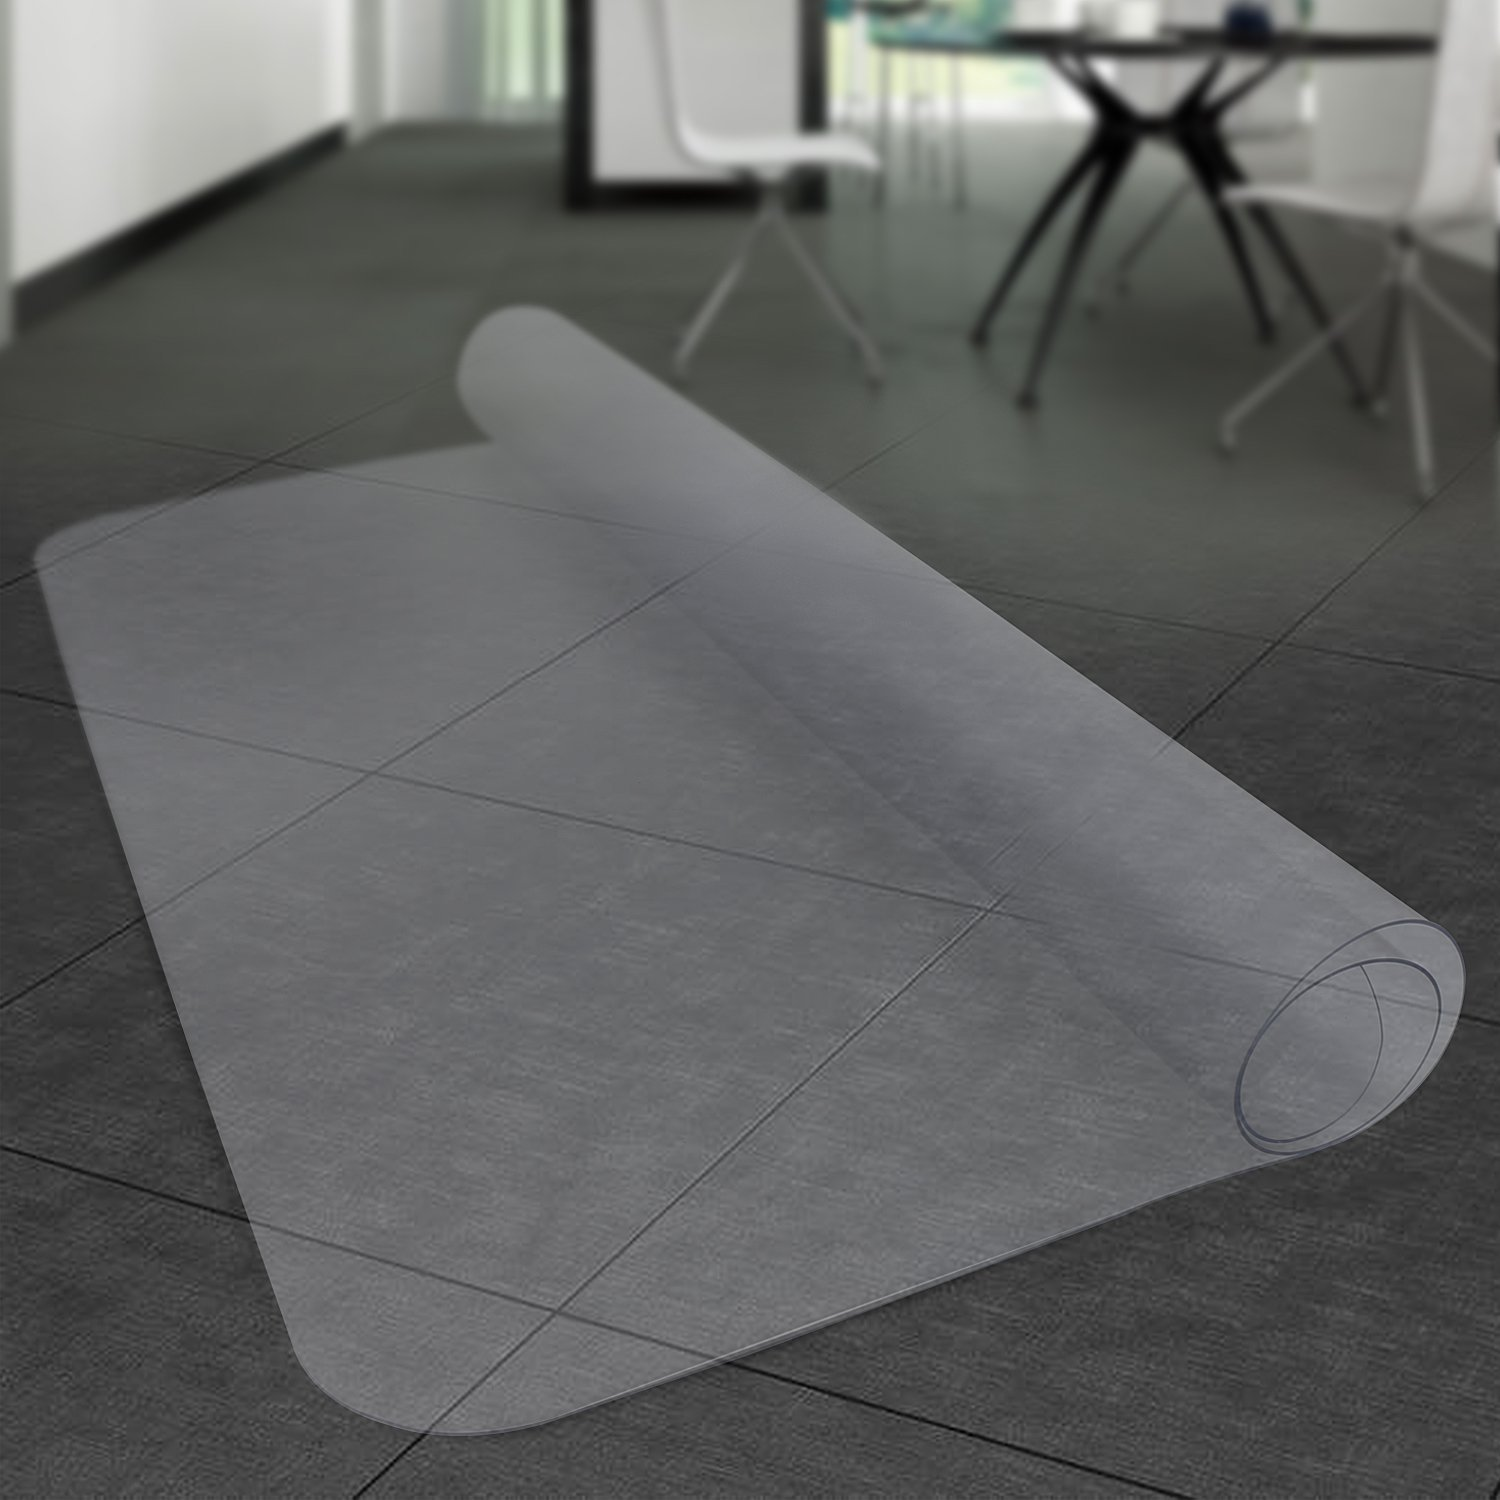 MATDOM Office Chair Mat for Hardwood Floor,48''×36'' Great Clear Vinyl Hard Floor Mat with Smooth Surface, Anti-Slip Thick and Sturdy Desk Floor Protective Mats